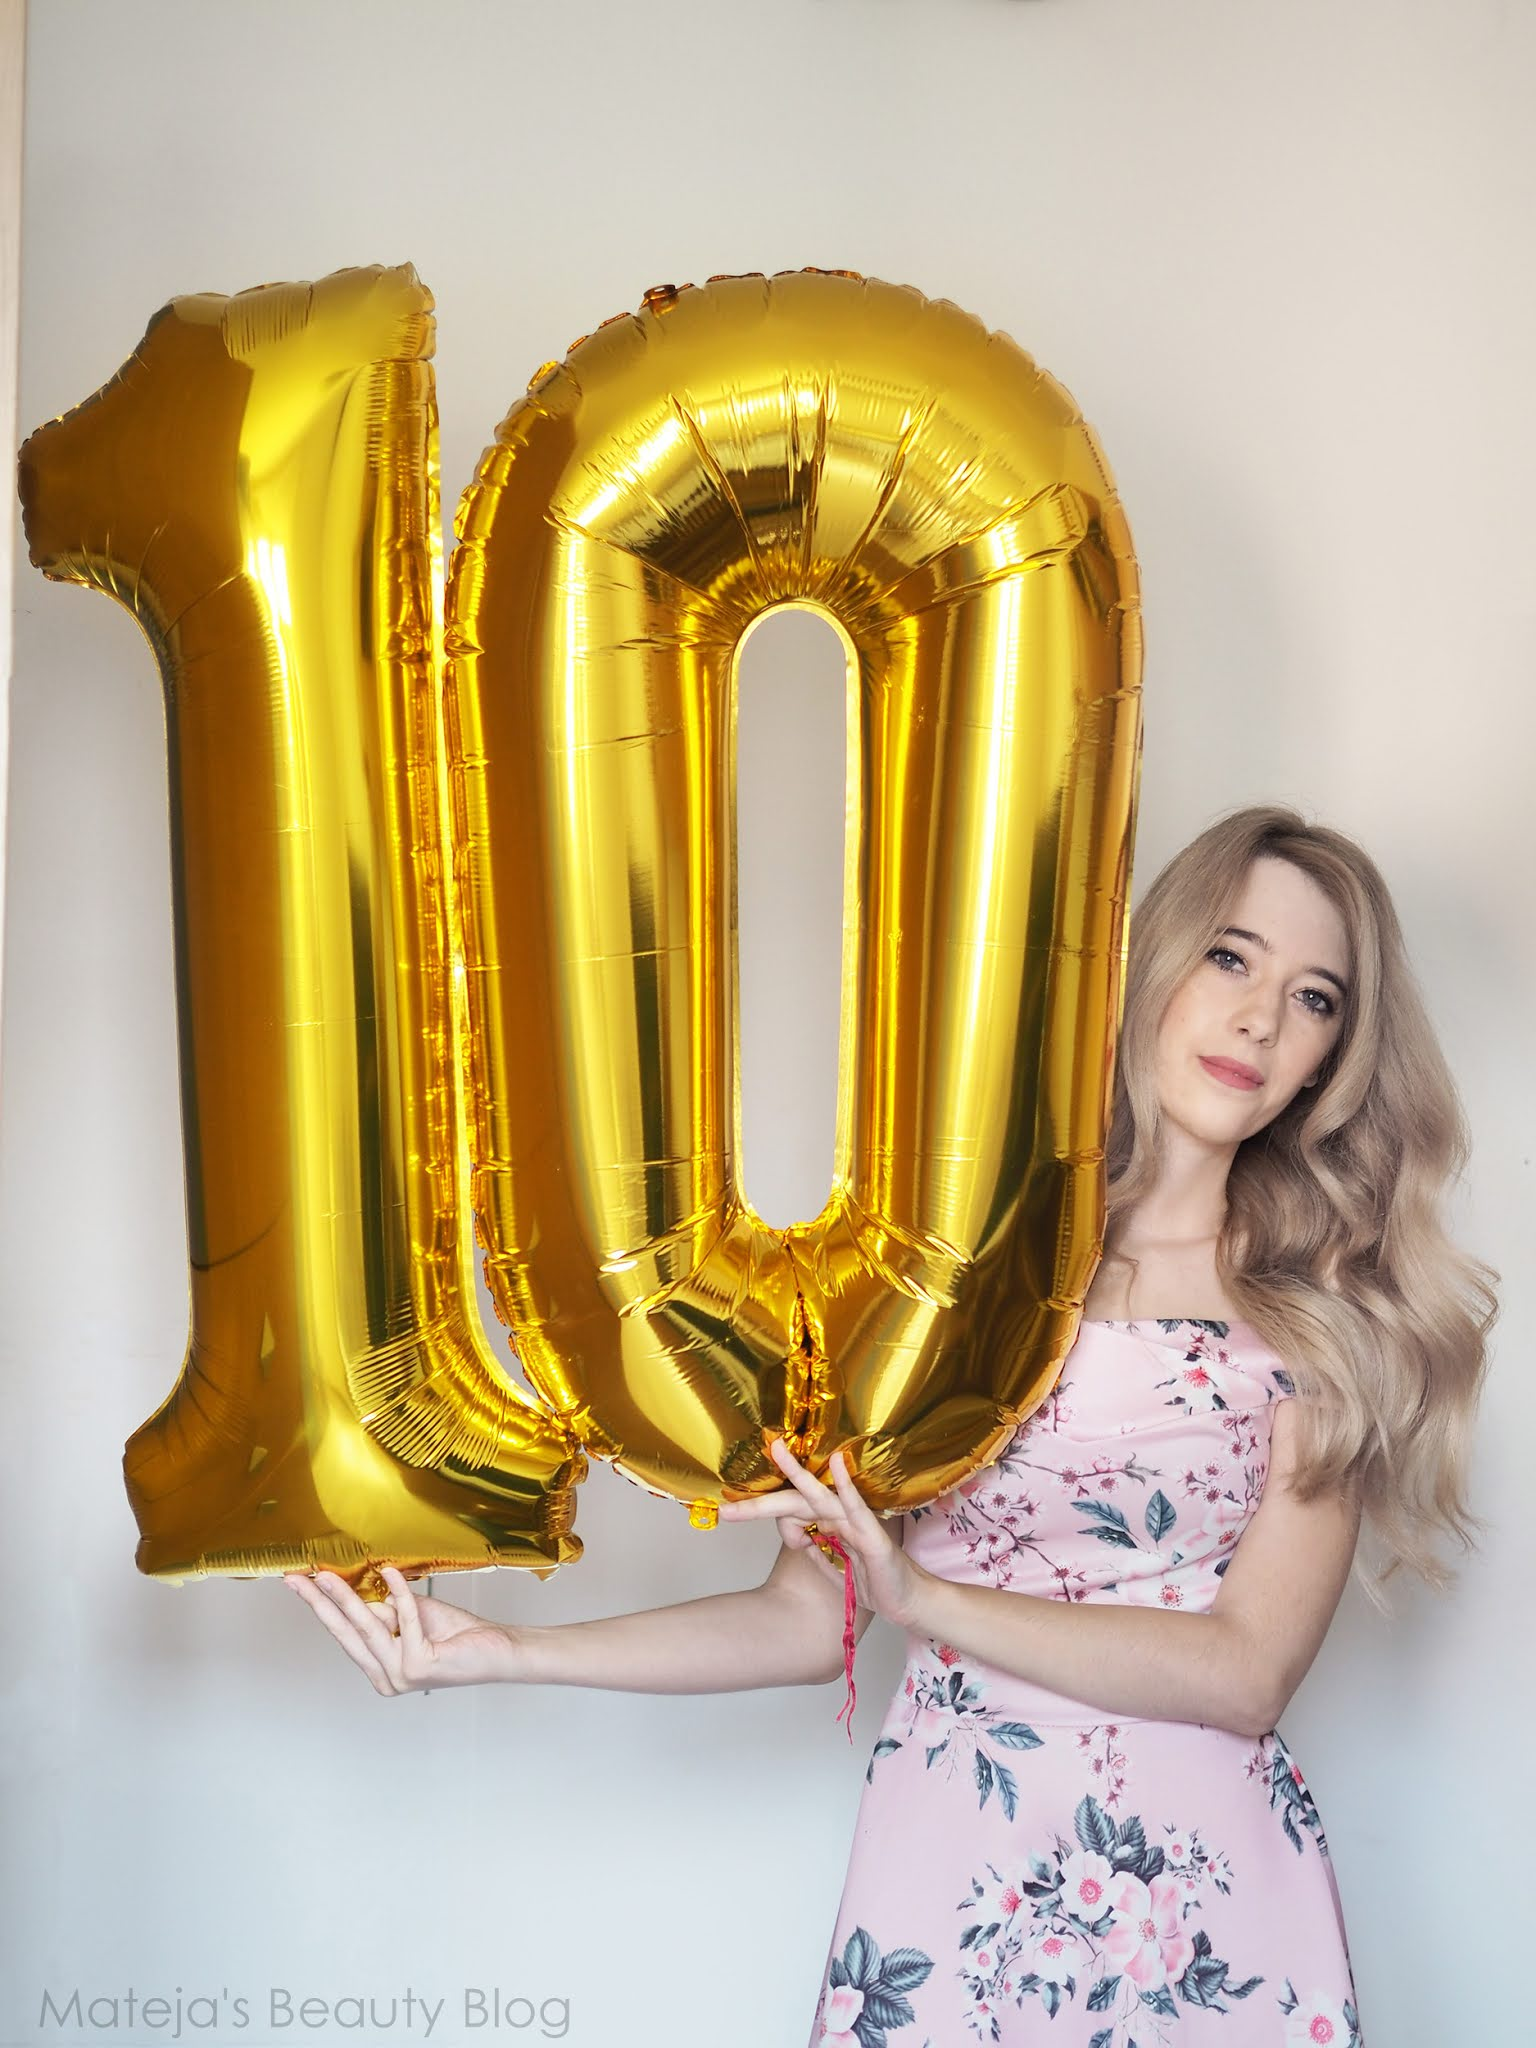 It's Mateja's Beauty Blog's 10th Birthday + a Giveaway